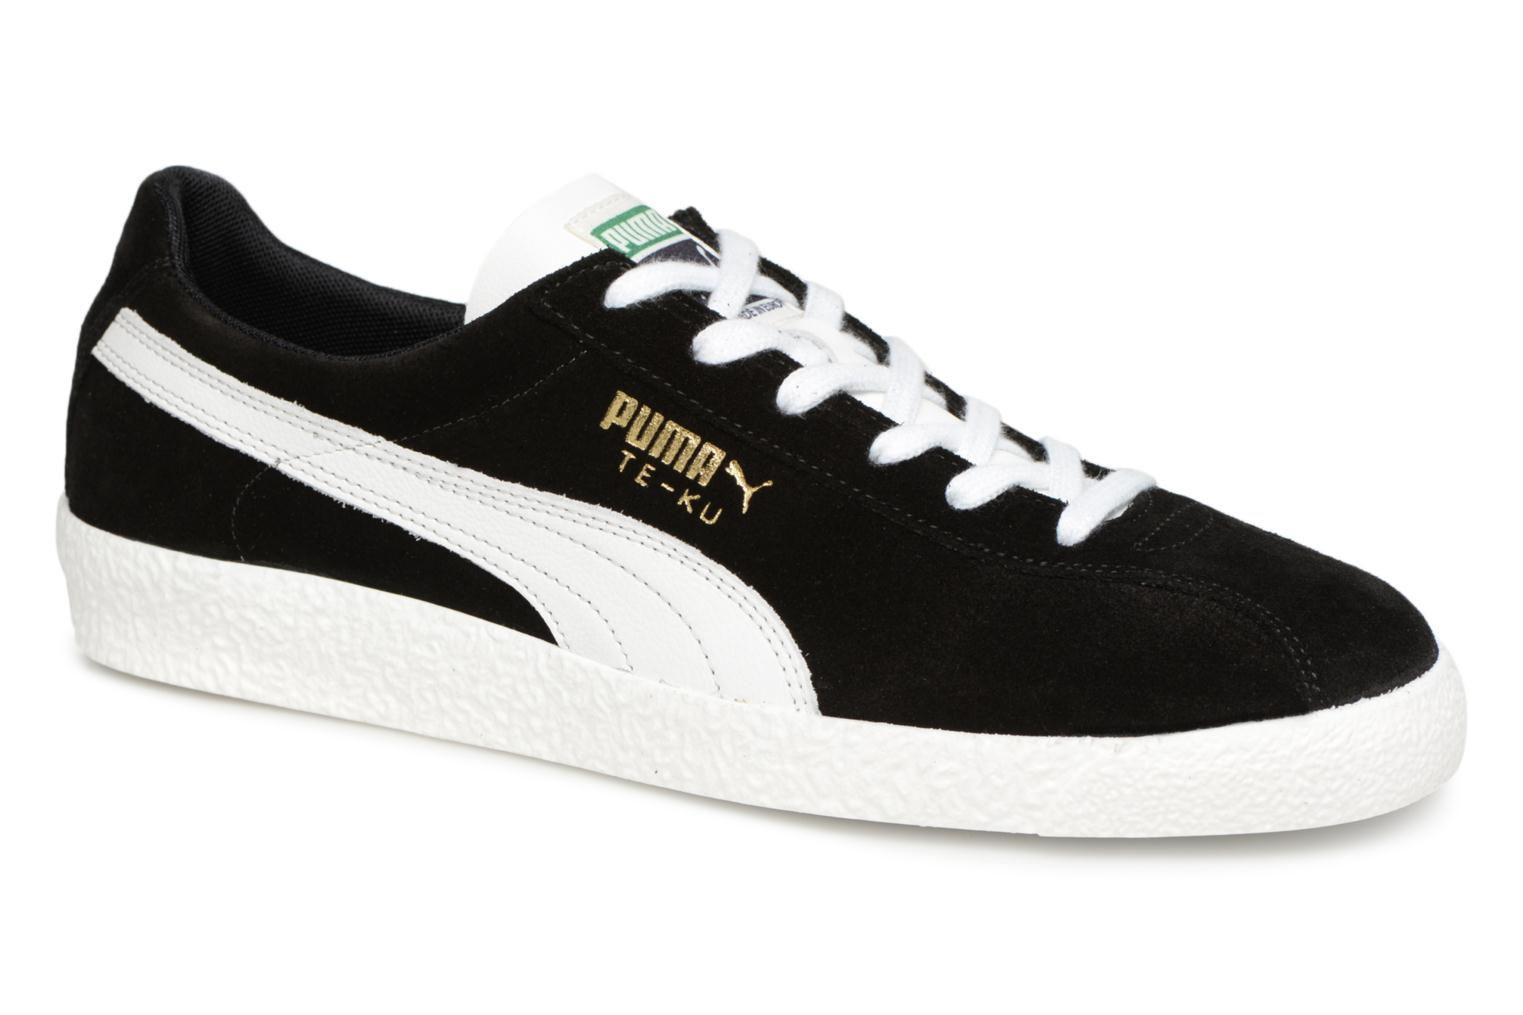 Prime puma Puma ku Black Te White On0P8wkX